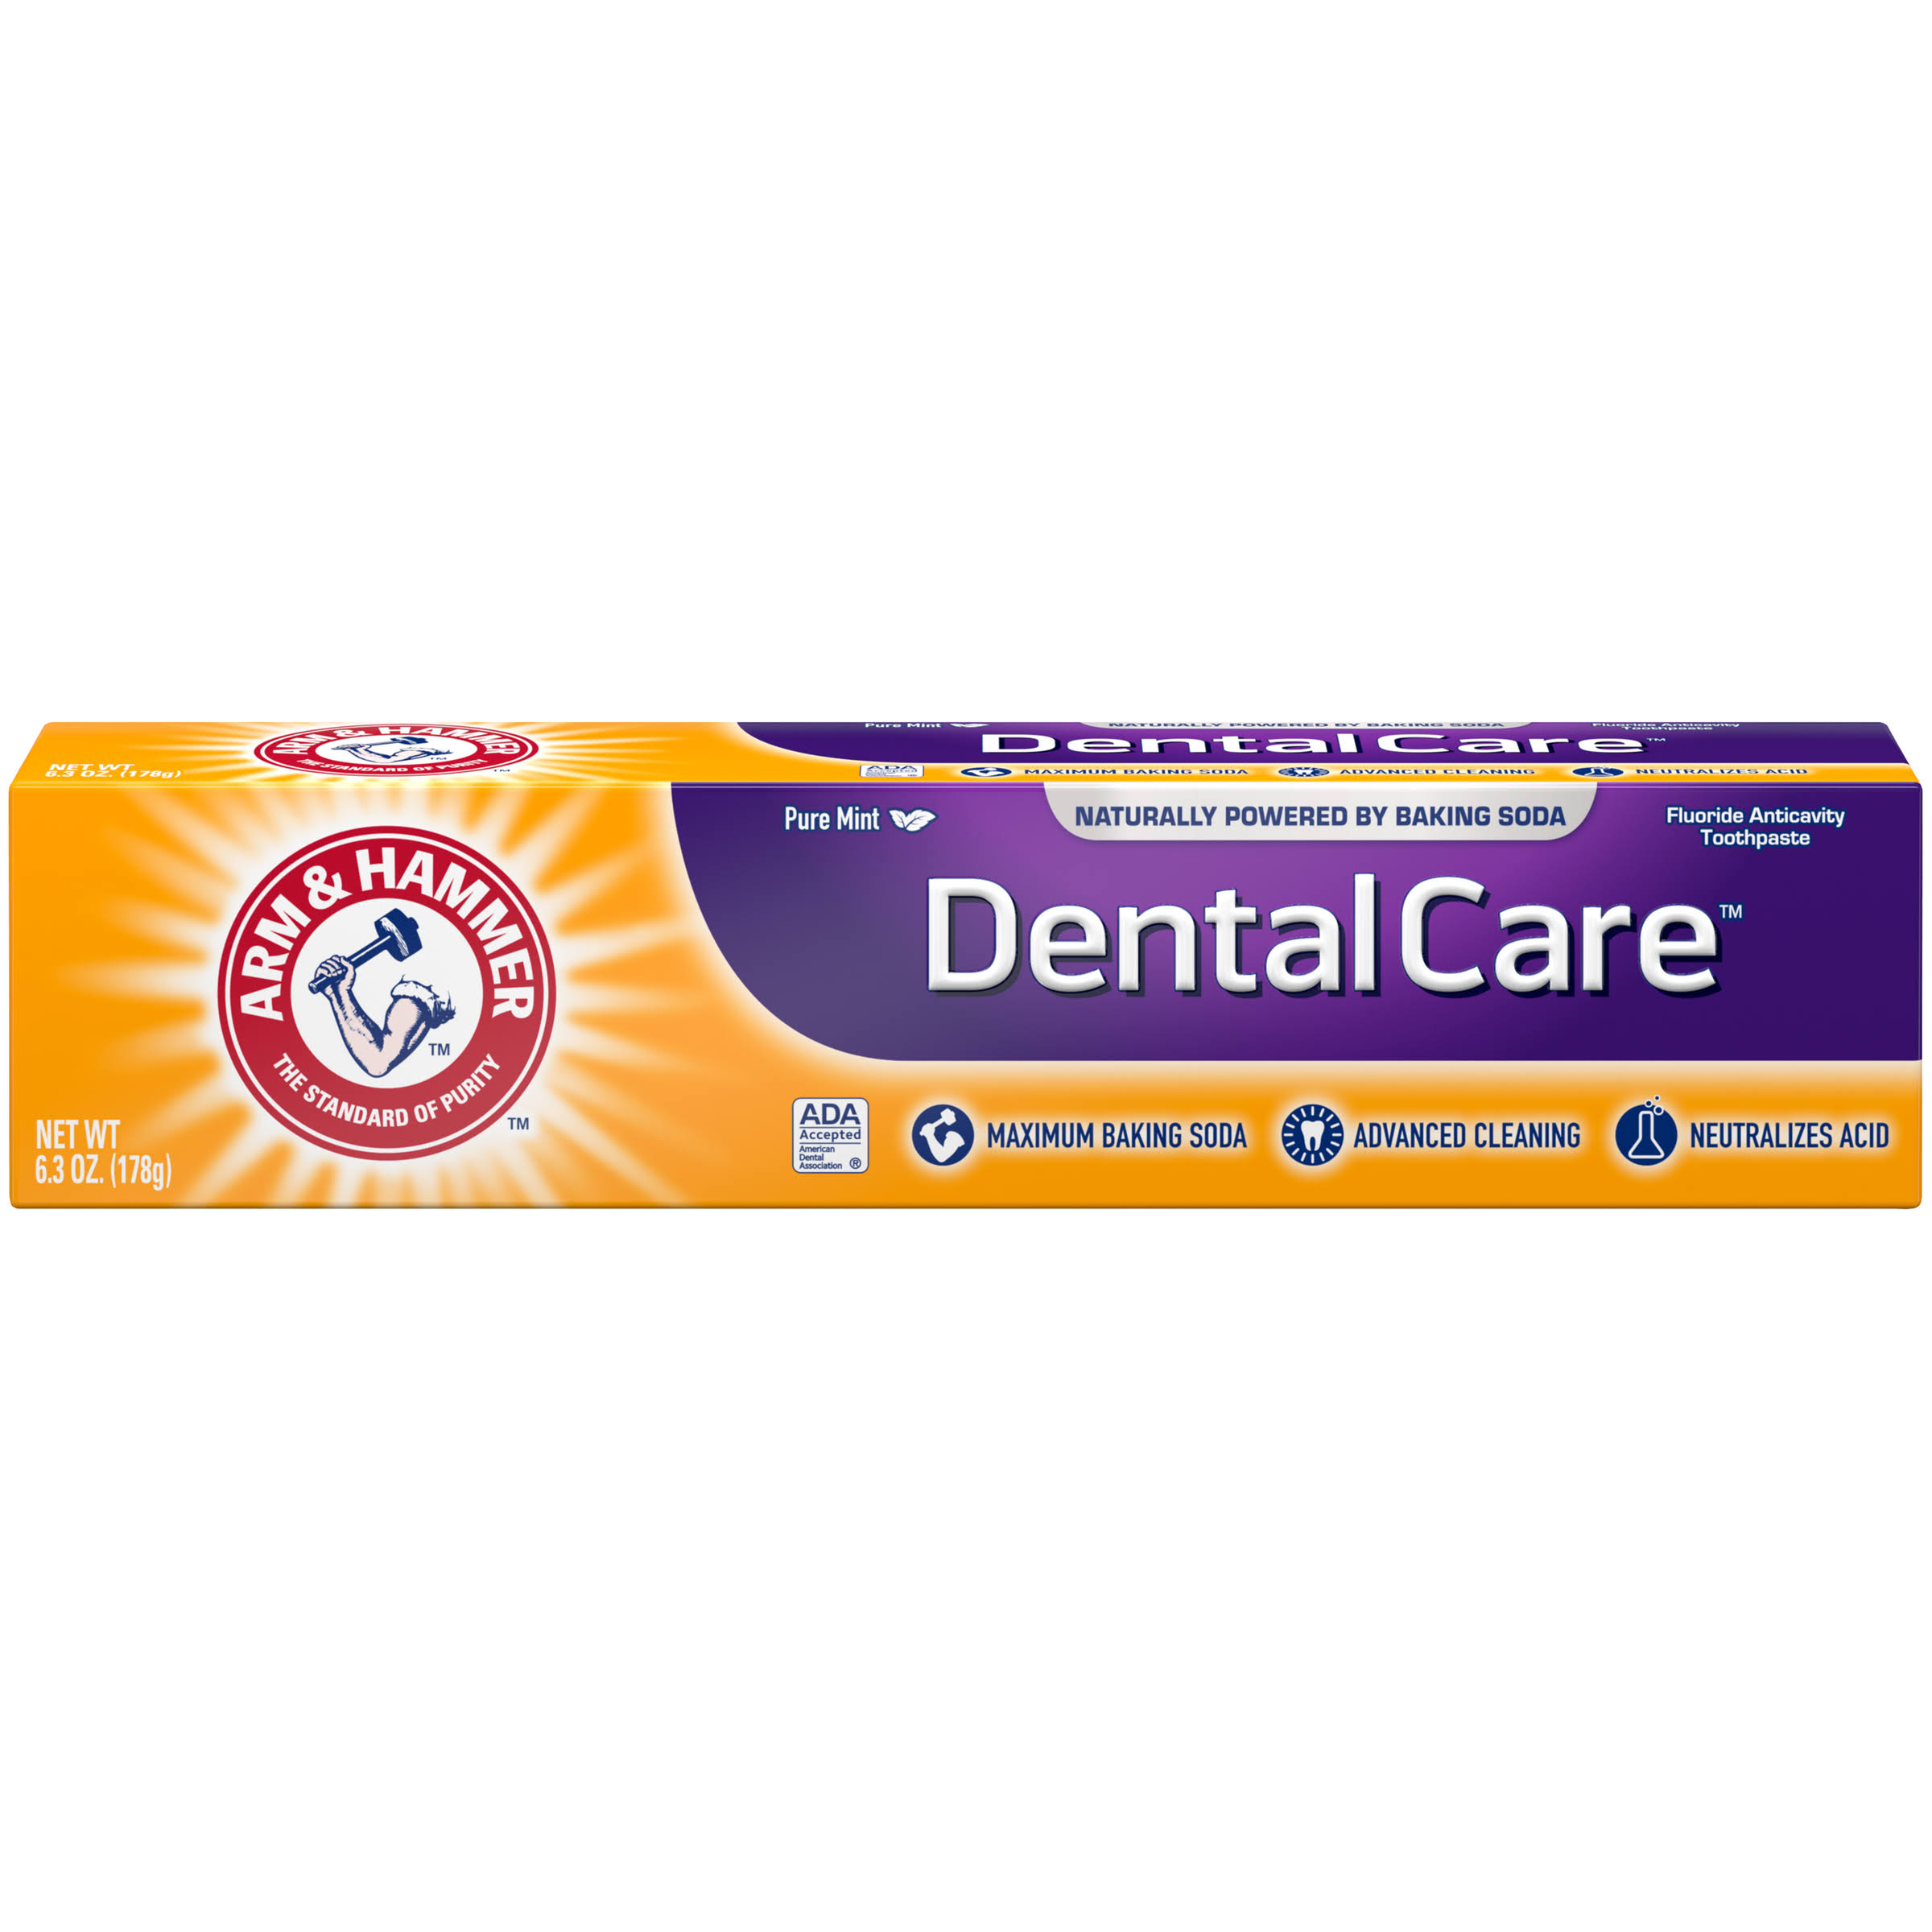 Arm and Hammer Dental Care Advance Cleaning Daily Fluoride Toothpaste - with Baking Soda, Fresh Mint